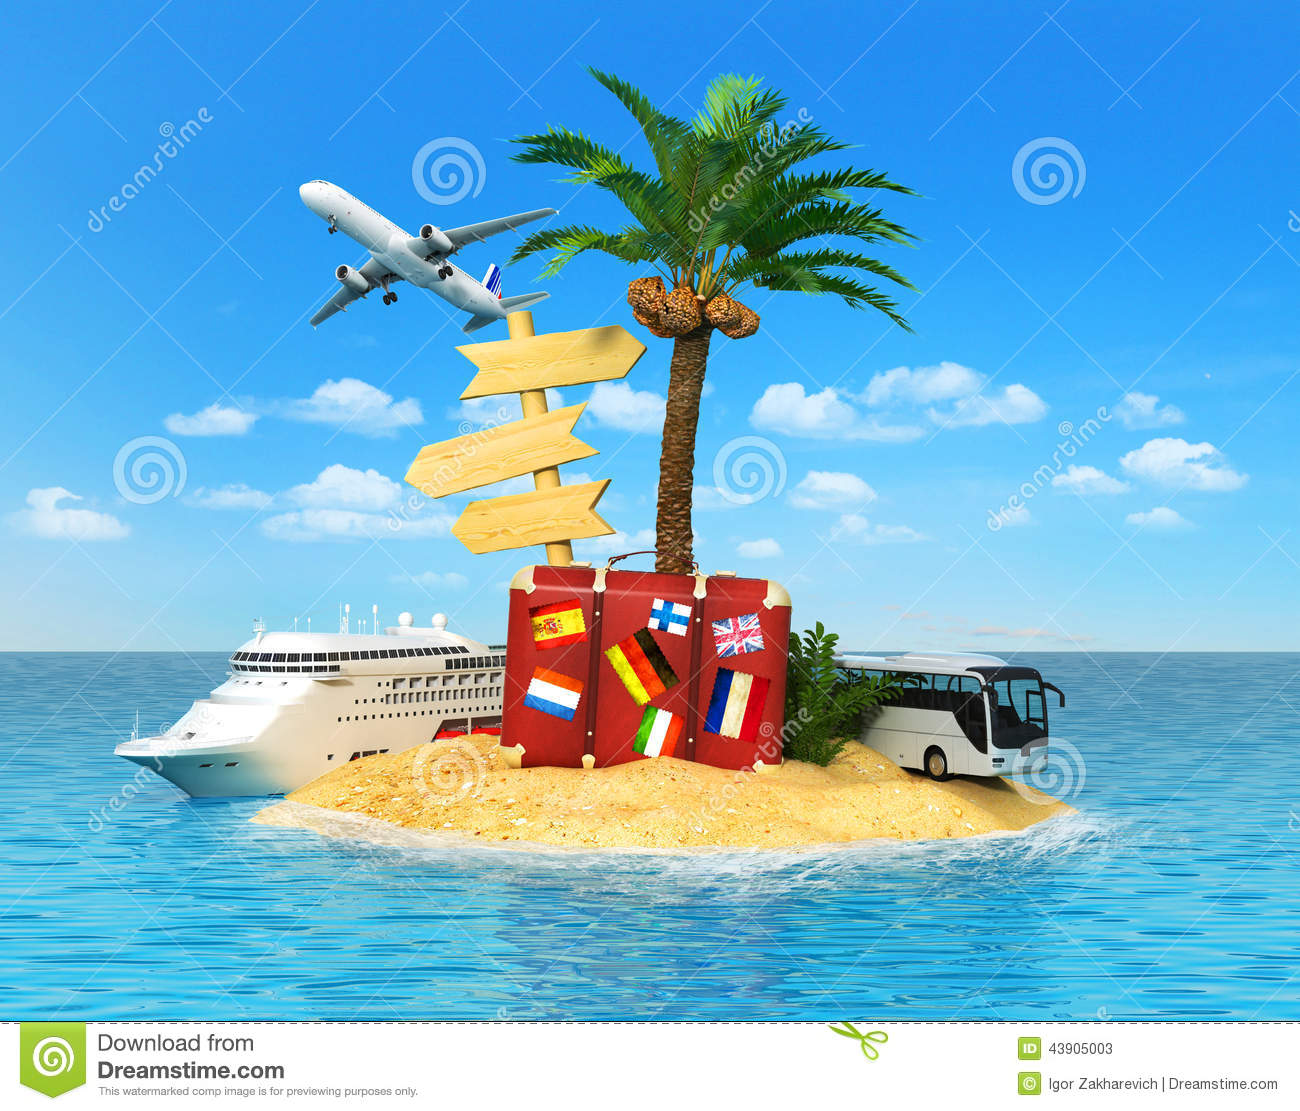 Palm Tree Island: Tropical Island With Palm Tree, Stock Image